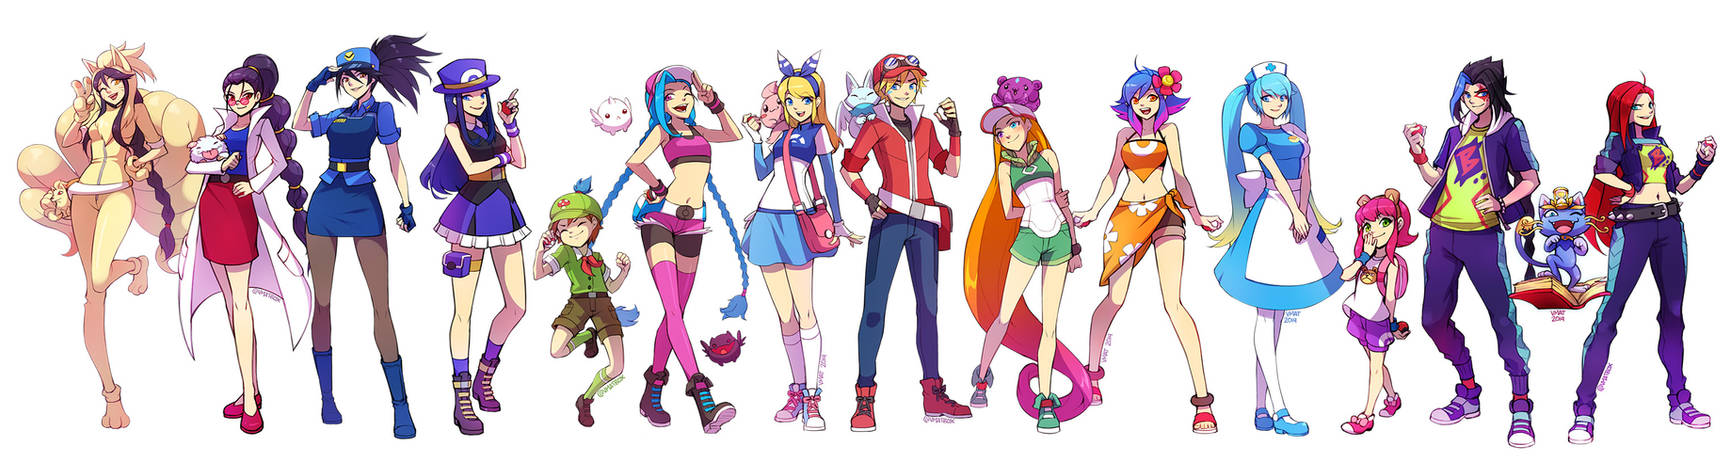 League of Legends champions as Pokemon Trainers by vmat